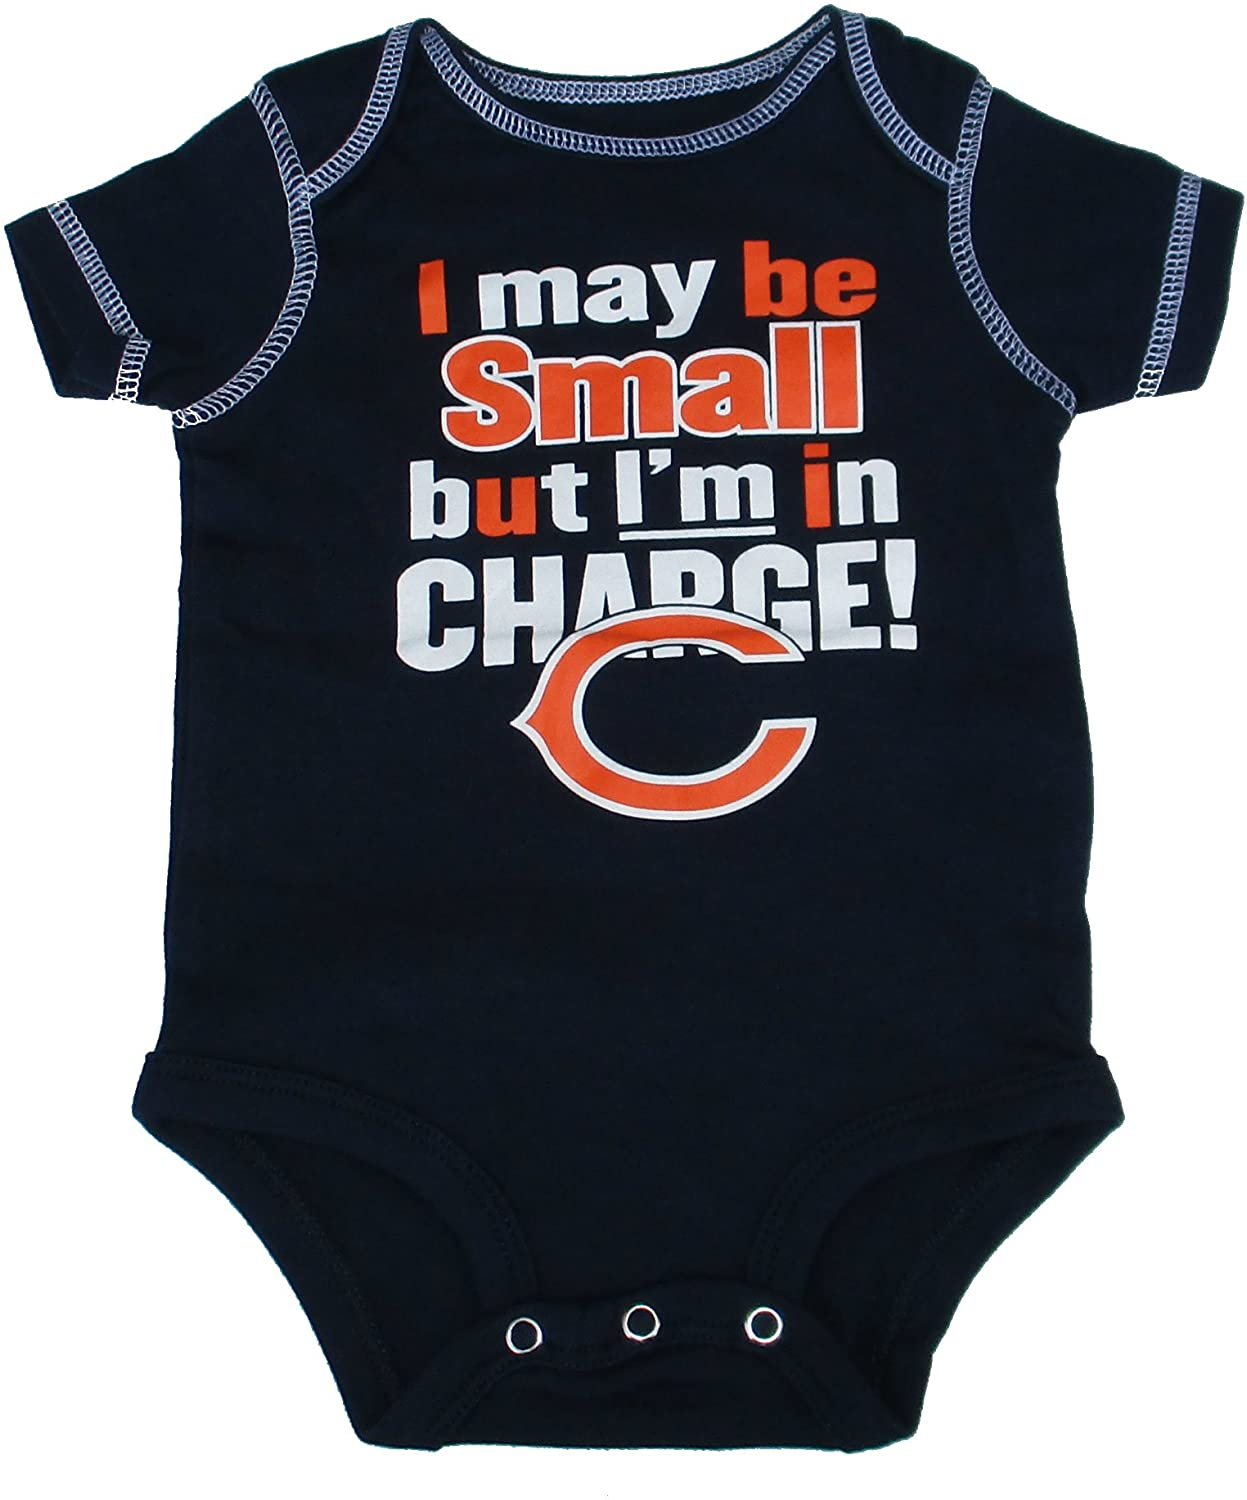 Genuine Merchandise Chicago Bears I May BE Small BUT I'm in Charge Infant One Piece Size 0-3 Months Bodysuit Creeper - Navy